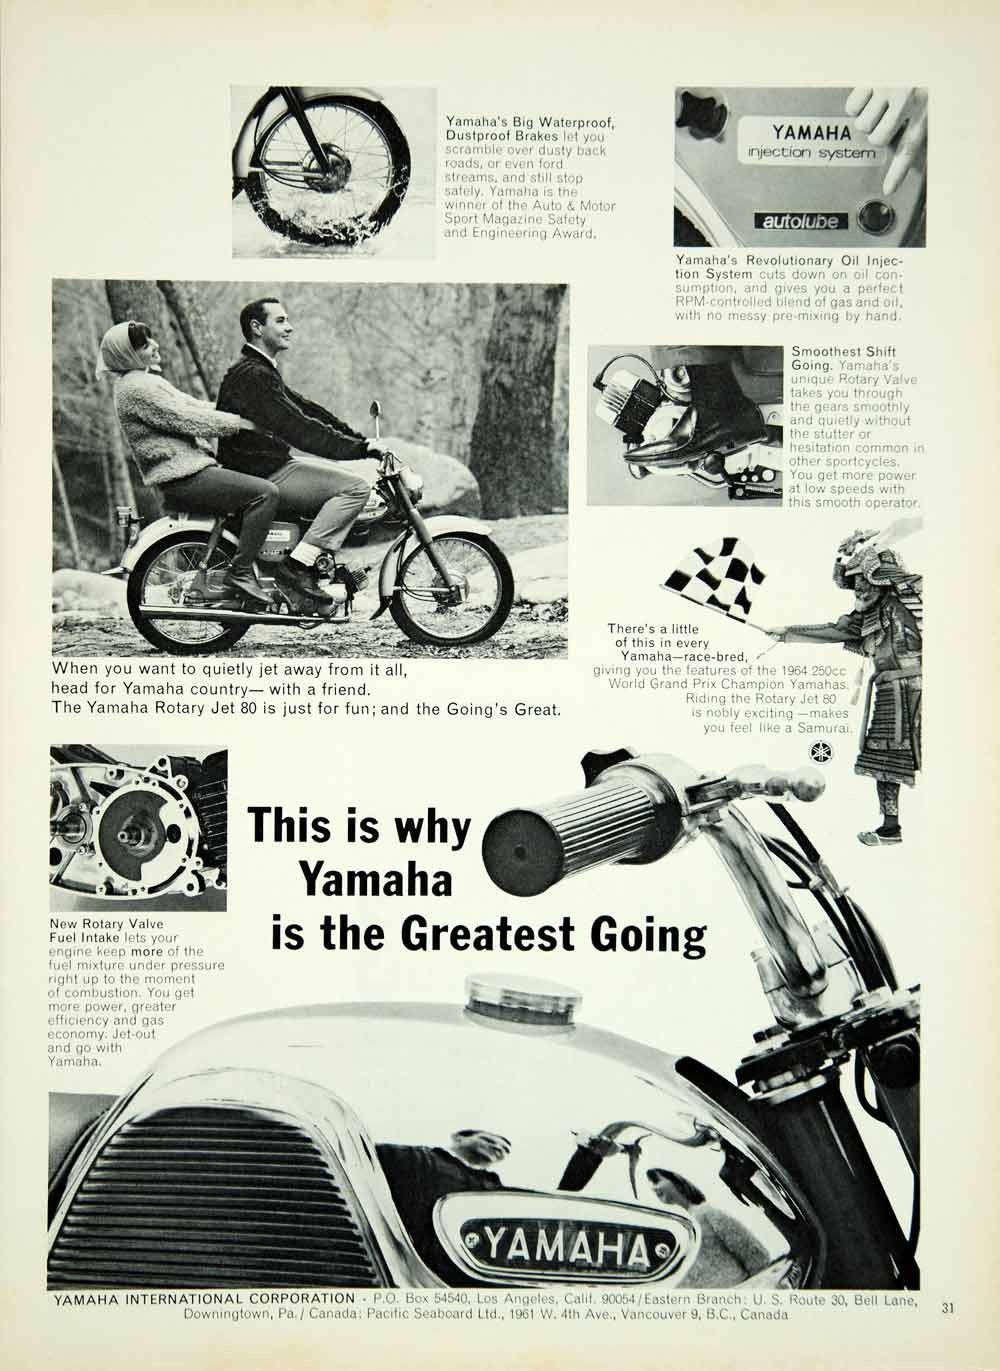 1965 Ad Vintage Yamaha Rotary Jet 80 Motorcycle Motorcycling Motorcyclist  YMMA3